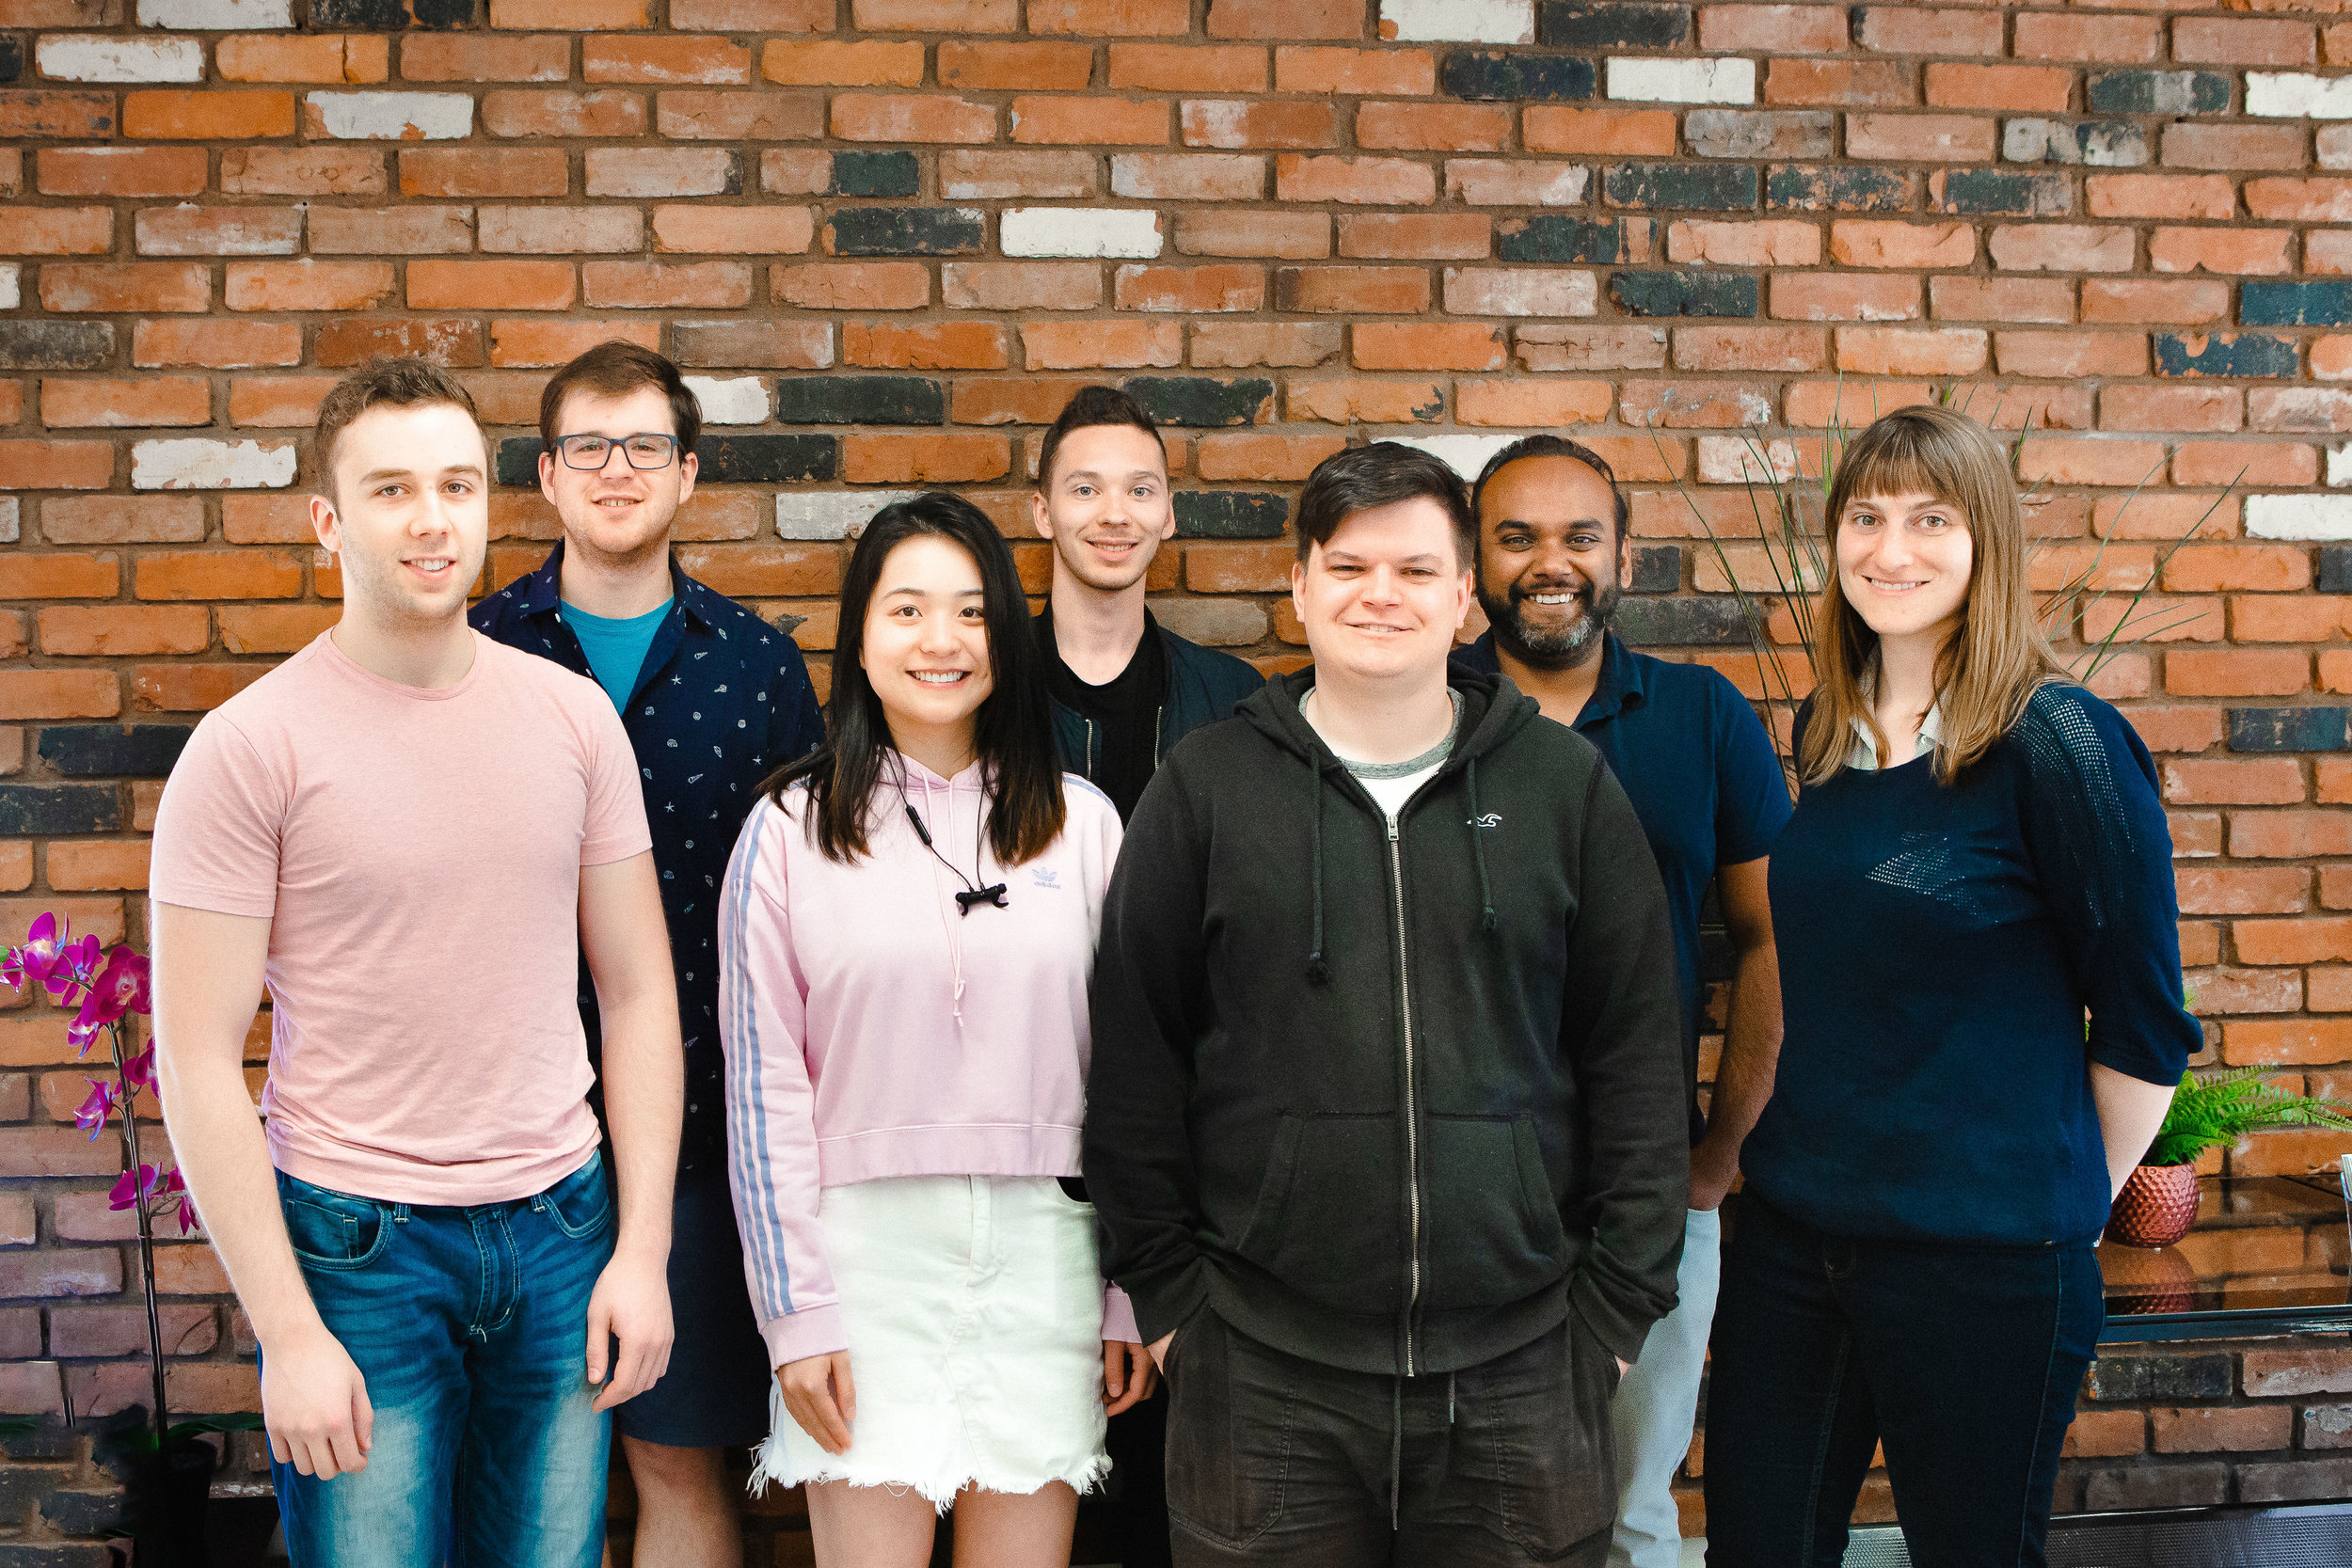 The APFM project team (from left to right): Jared Jewitt, Adam Dubicki, Vivian Zhang, Brendan Walker, JP DuBouchard, Rachit Khare, Kendall Olsen-Maier